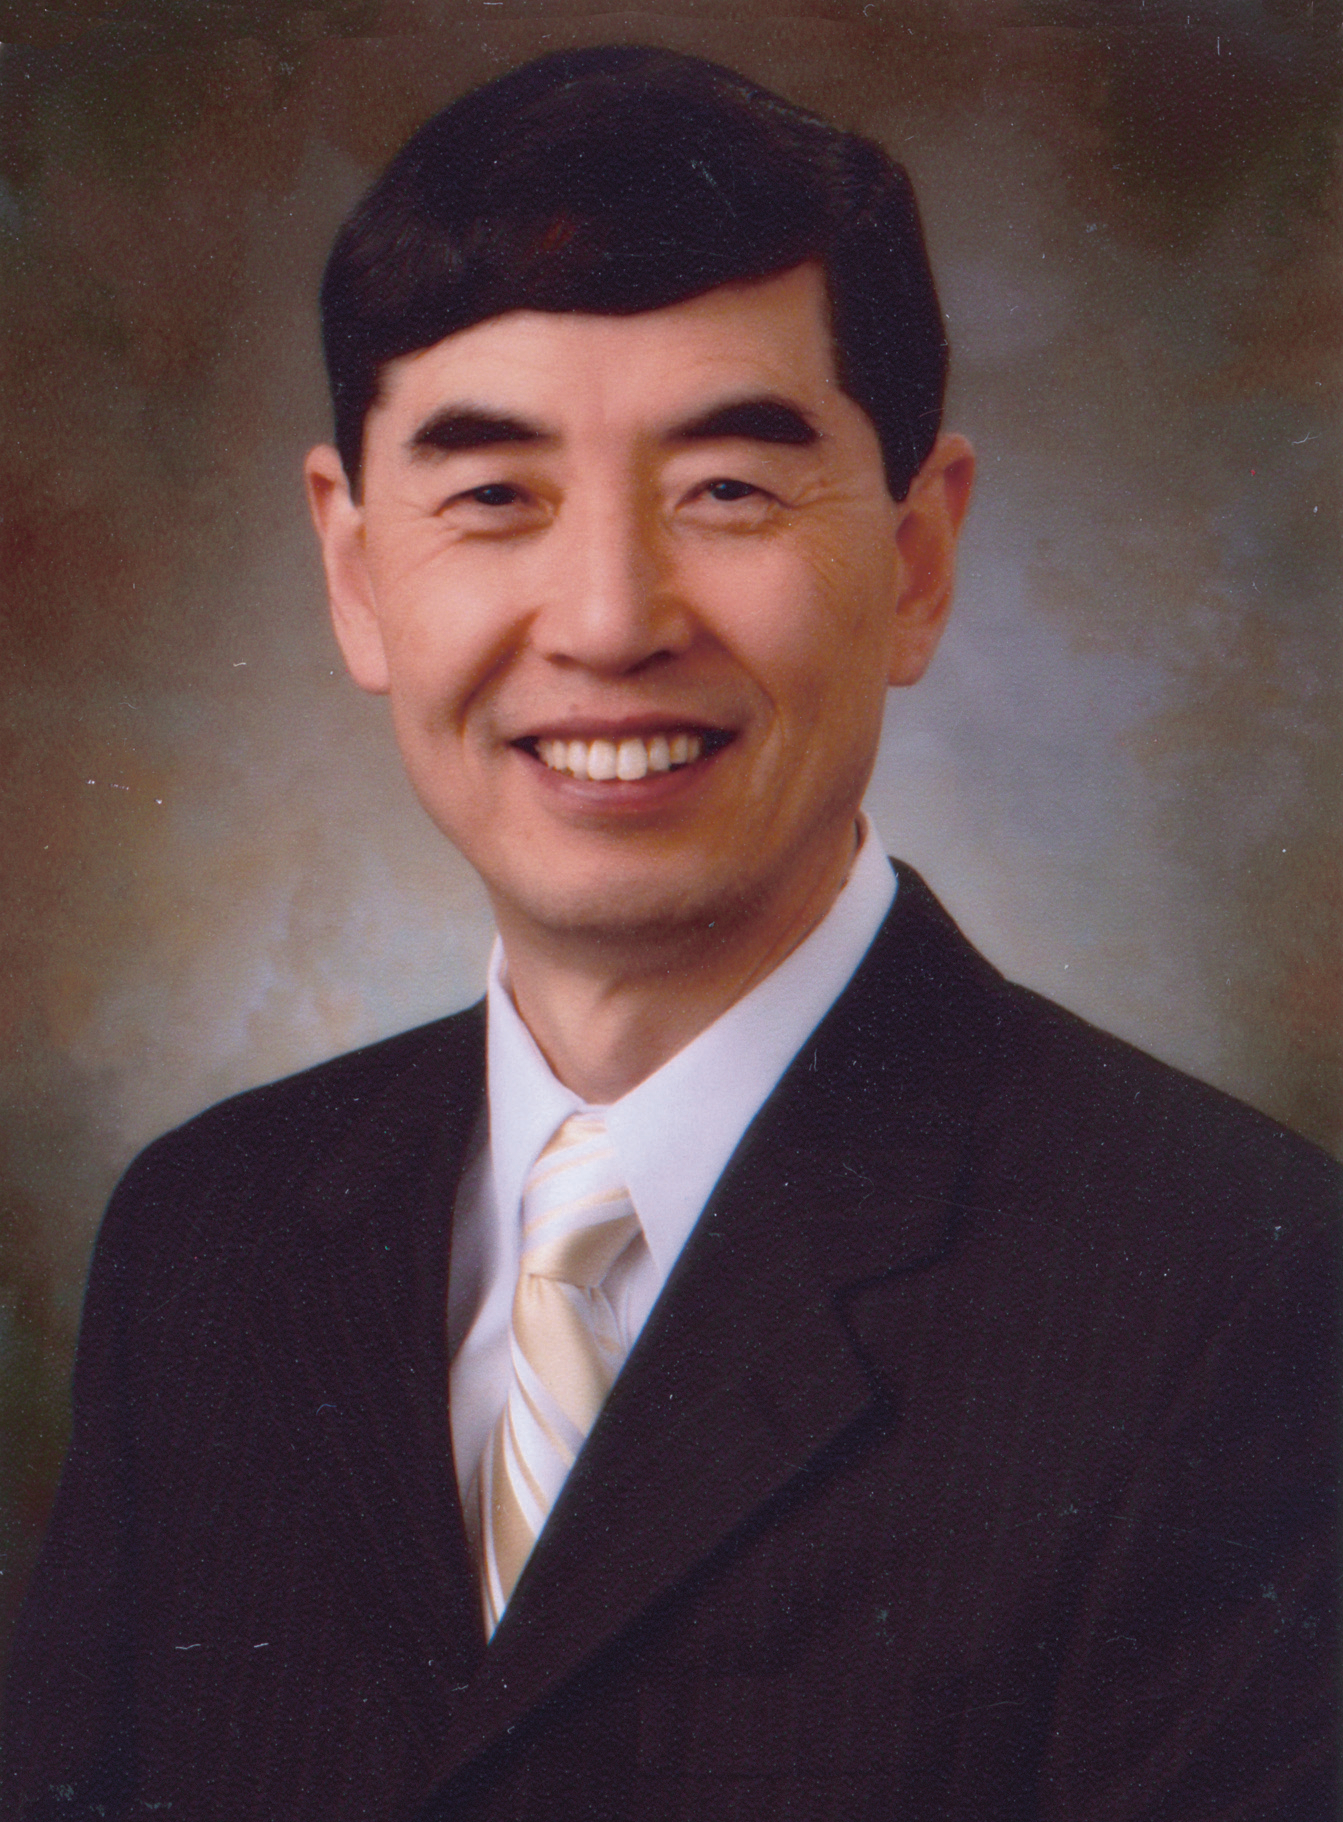 Young K. Yoo, MD